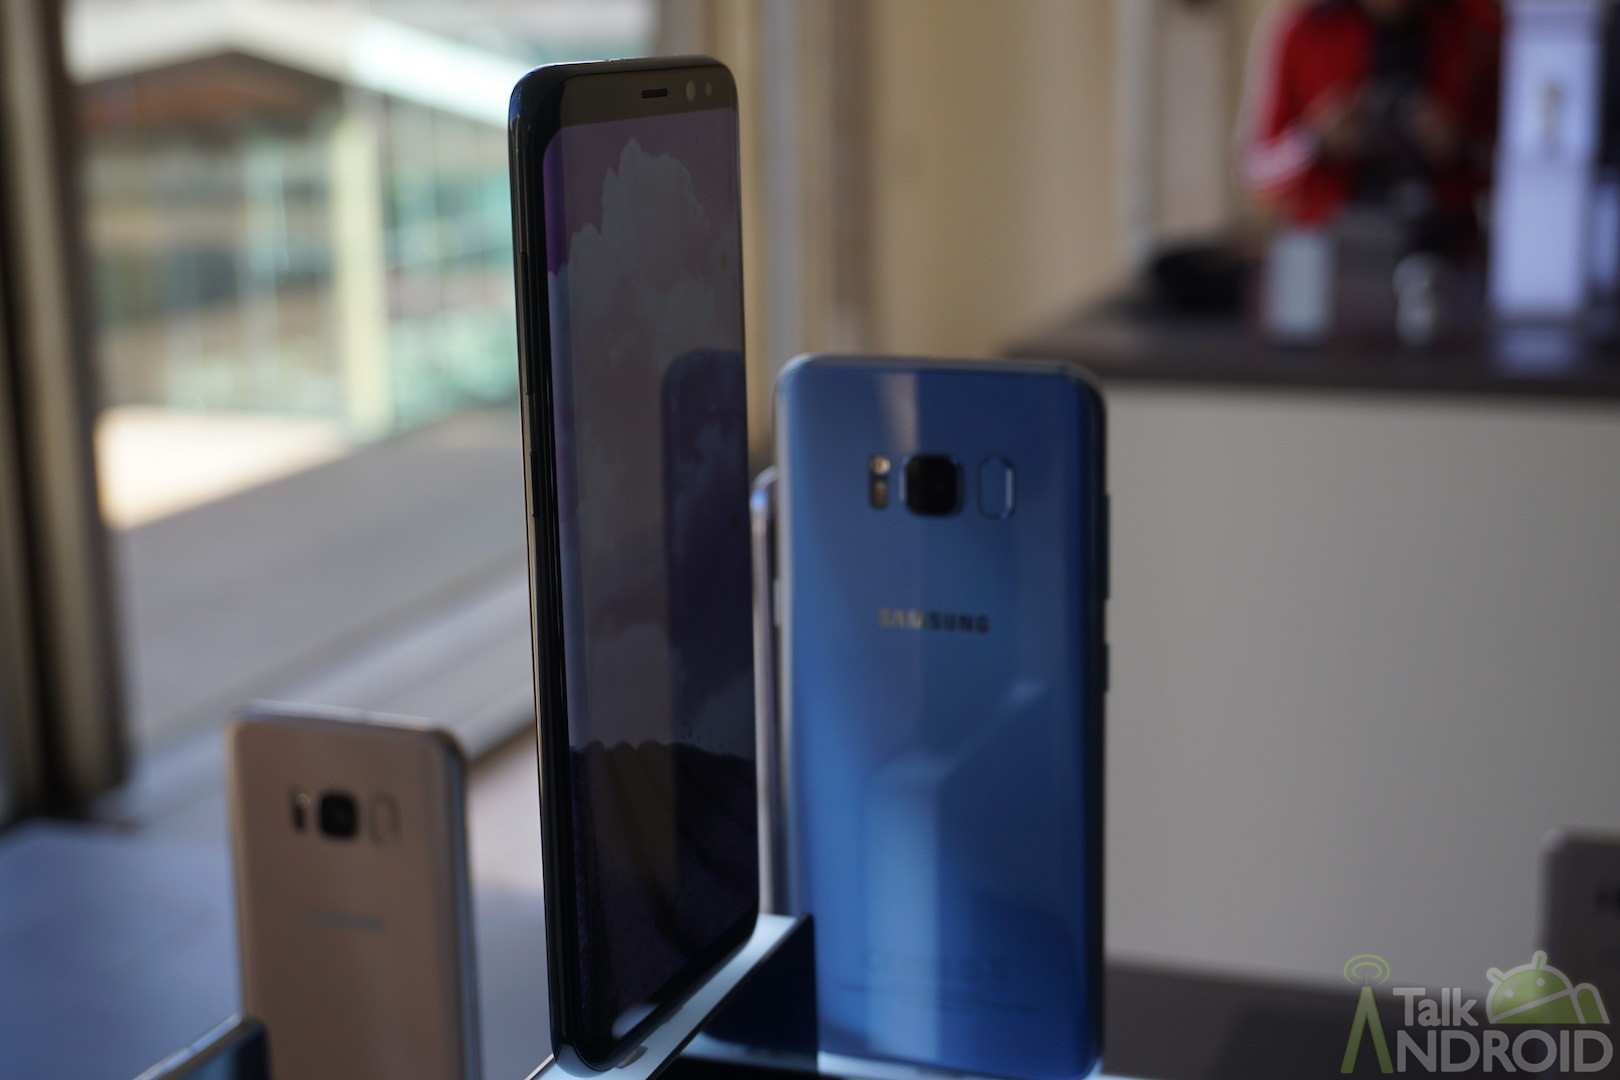 The Network introduced the Samsung Galaxy S9